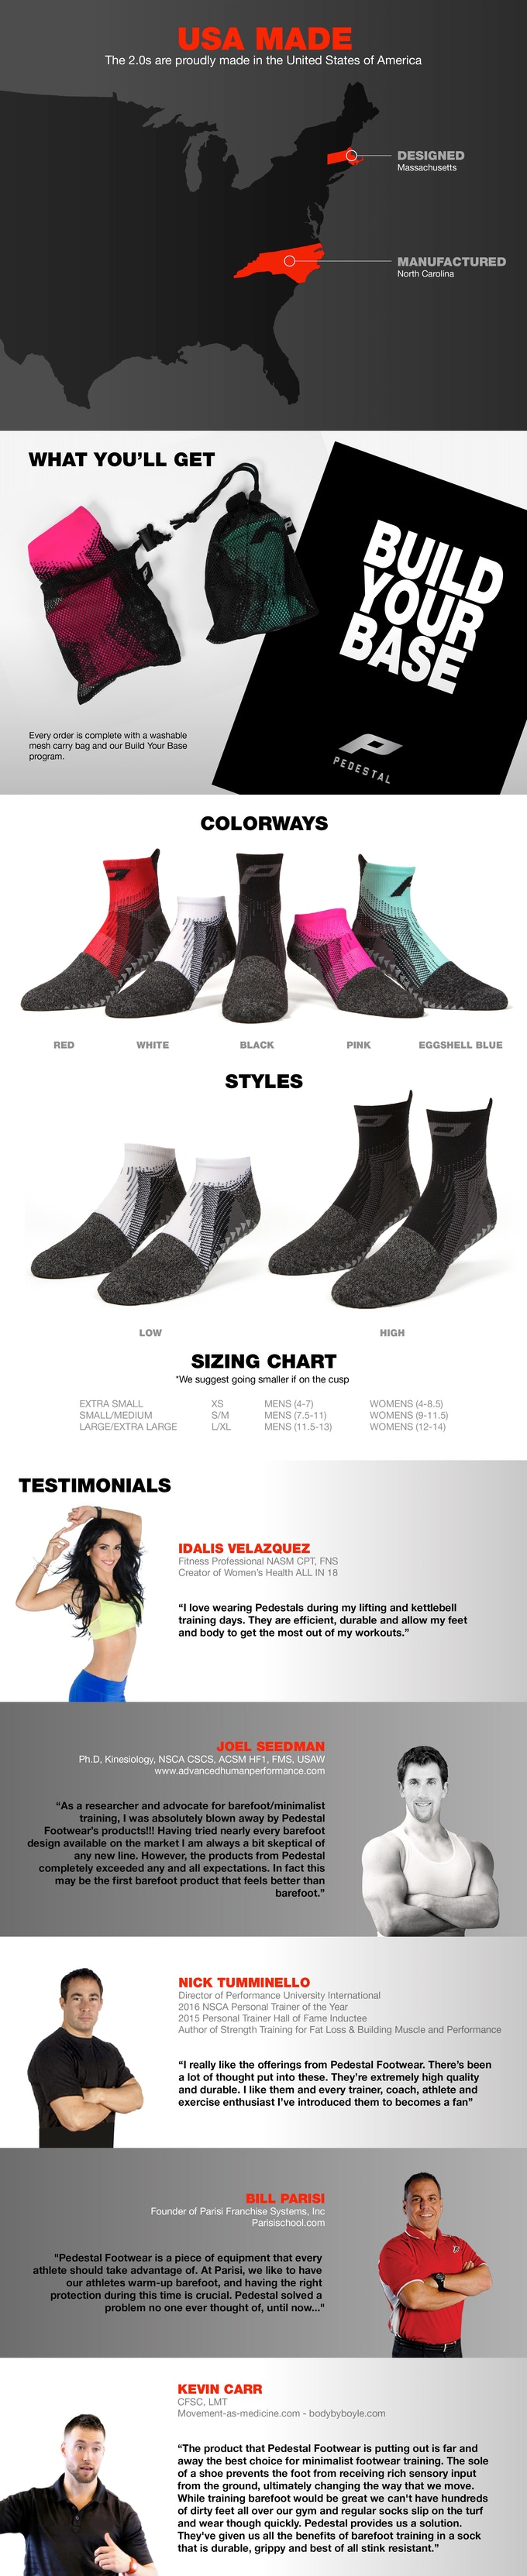 25364c98bd1 Pedestal Footwear: The Future of Performance Training by Pedestal ...